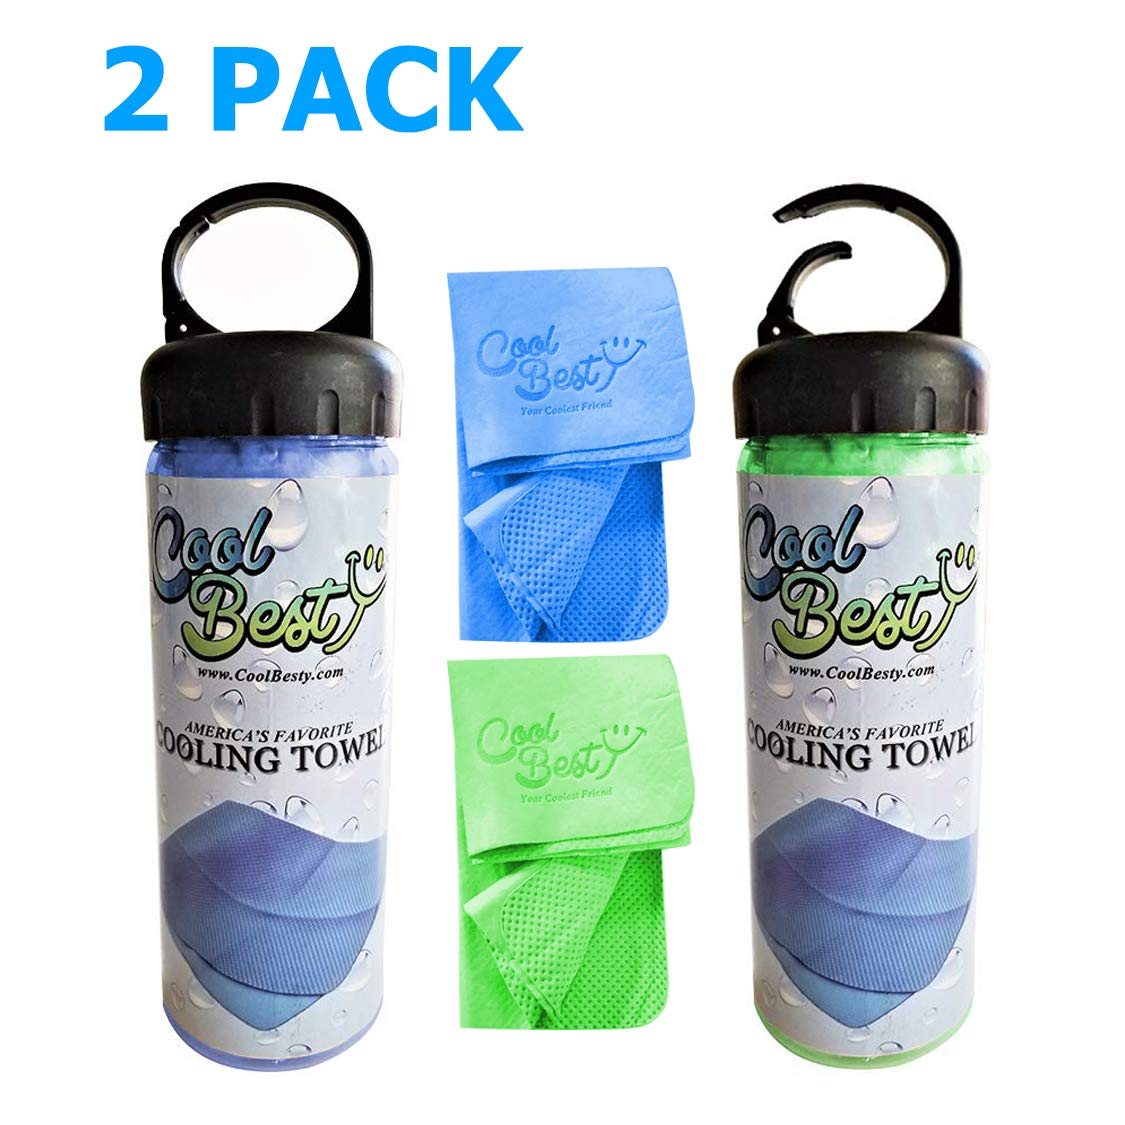 Cool Besty 2 Pack-Blue/Green - Cooling Towel-Workout/Tennis/Golf/Biking-Best for Any Sport Activities&Athletes Cold Towel-Chilly Pad Instant Cooling Snap Towel-Perfect for Fitness&Gym